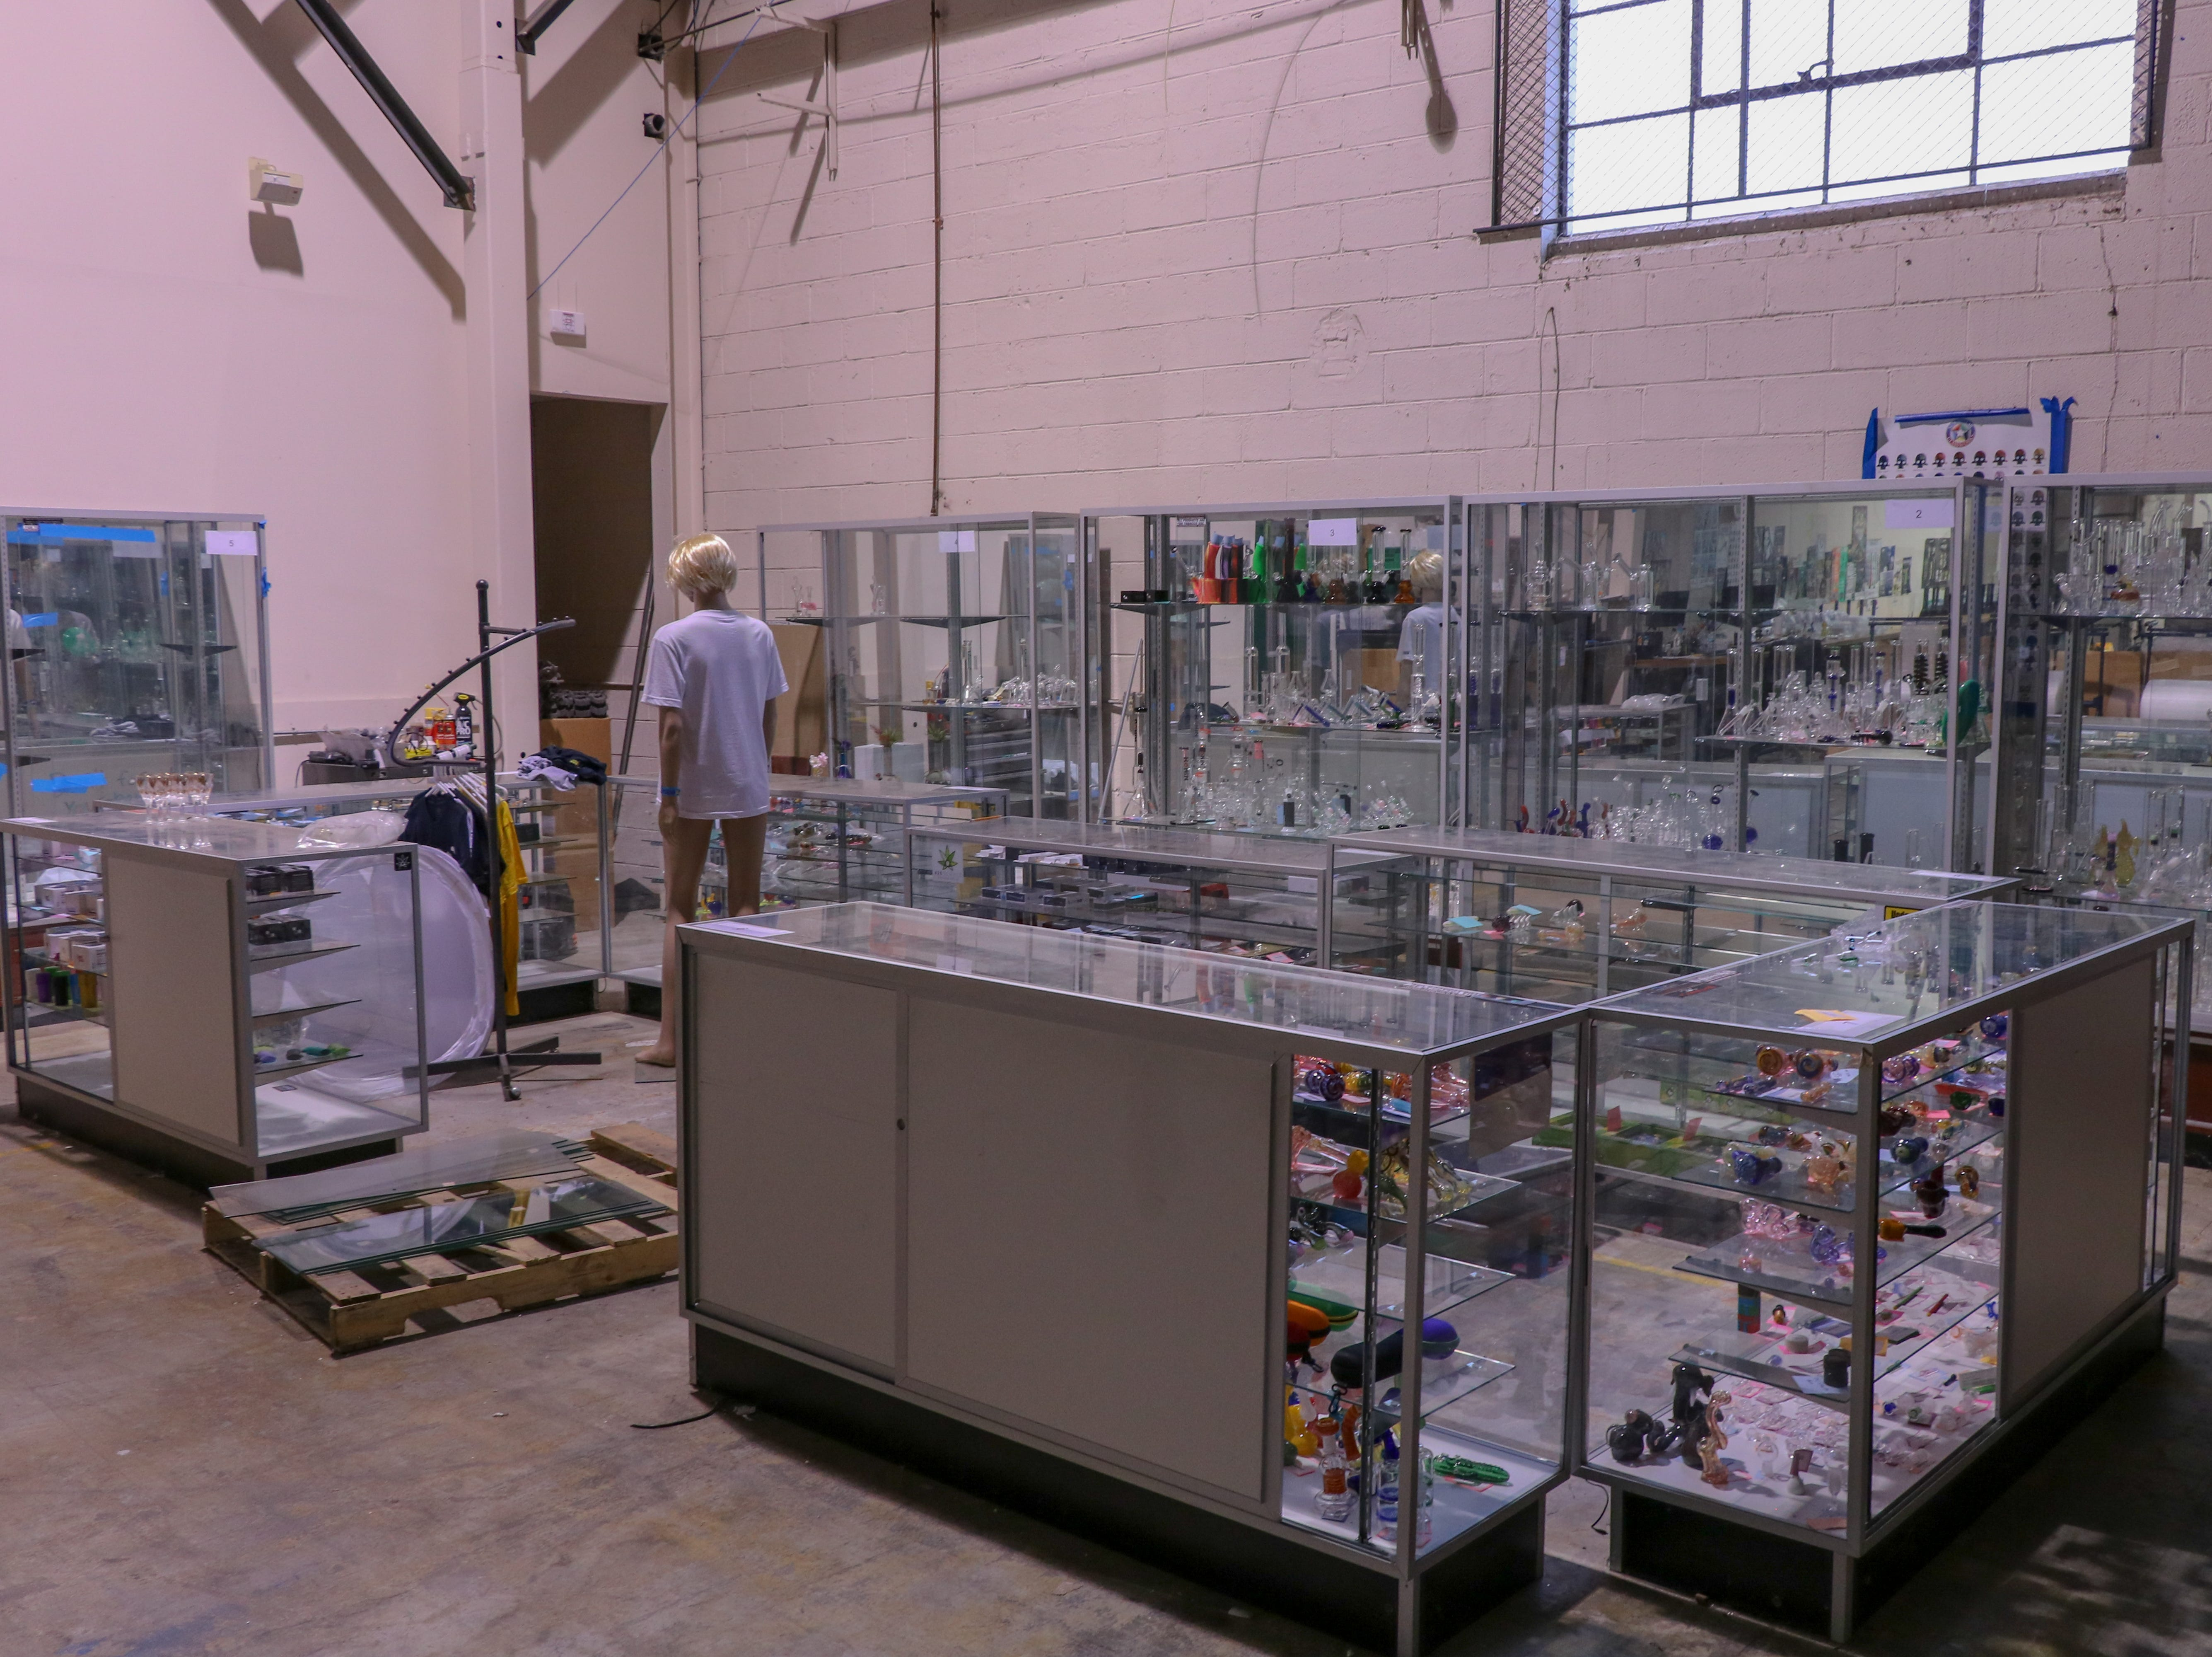 Edison-based online headshop DankStop prepares for marijuana legalization with a new life of pop-tops and jars.